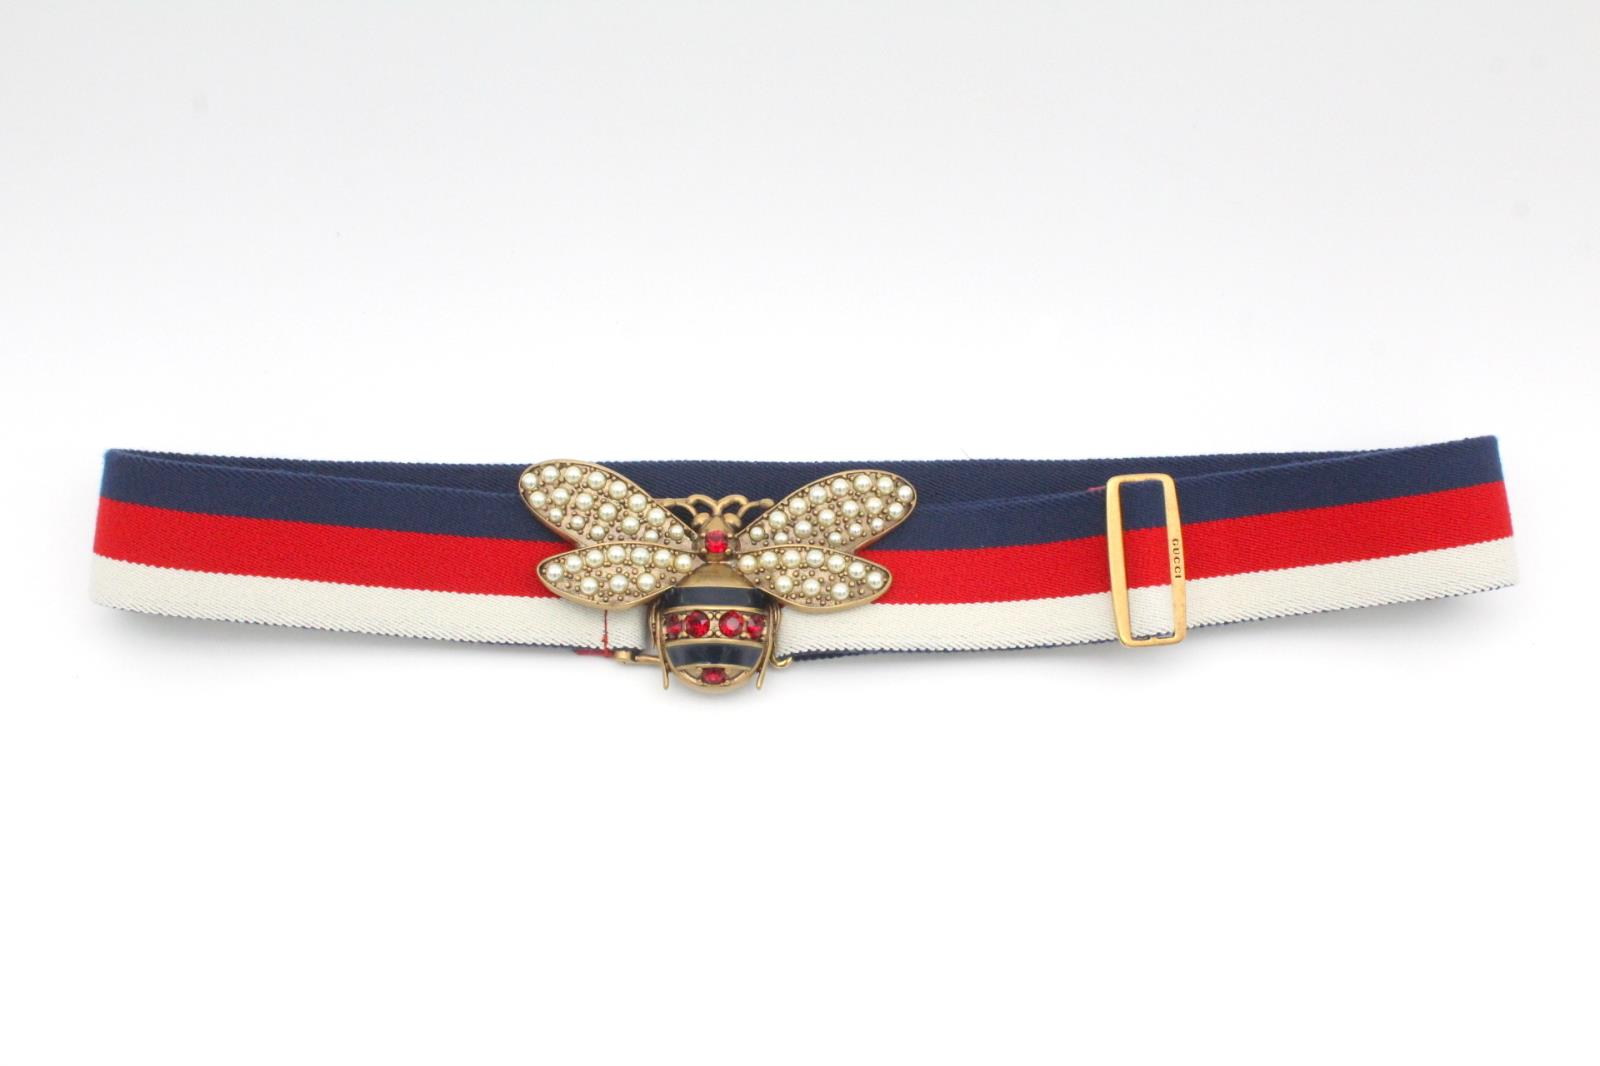 05920fa339f Gucci Sylvie Web Belt with Bee (453277HGW2T) Red   White   Blue ...